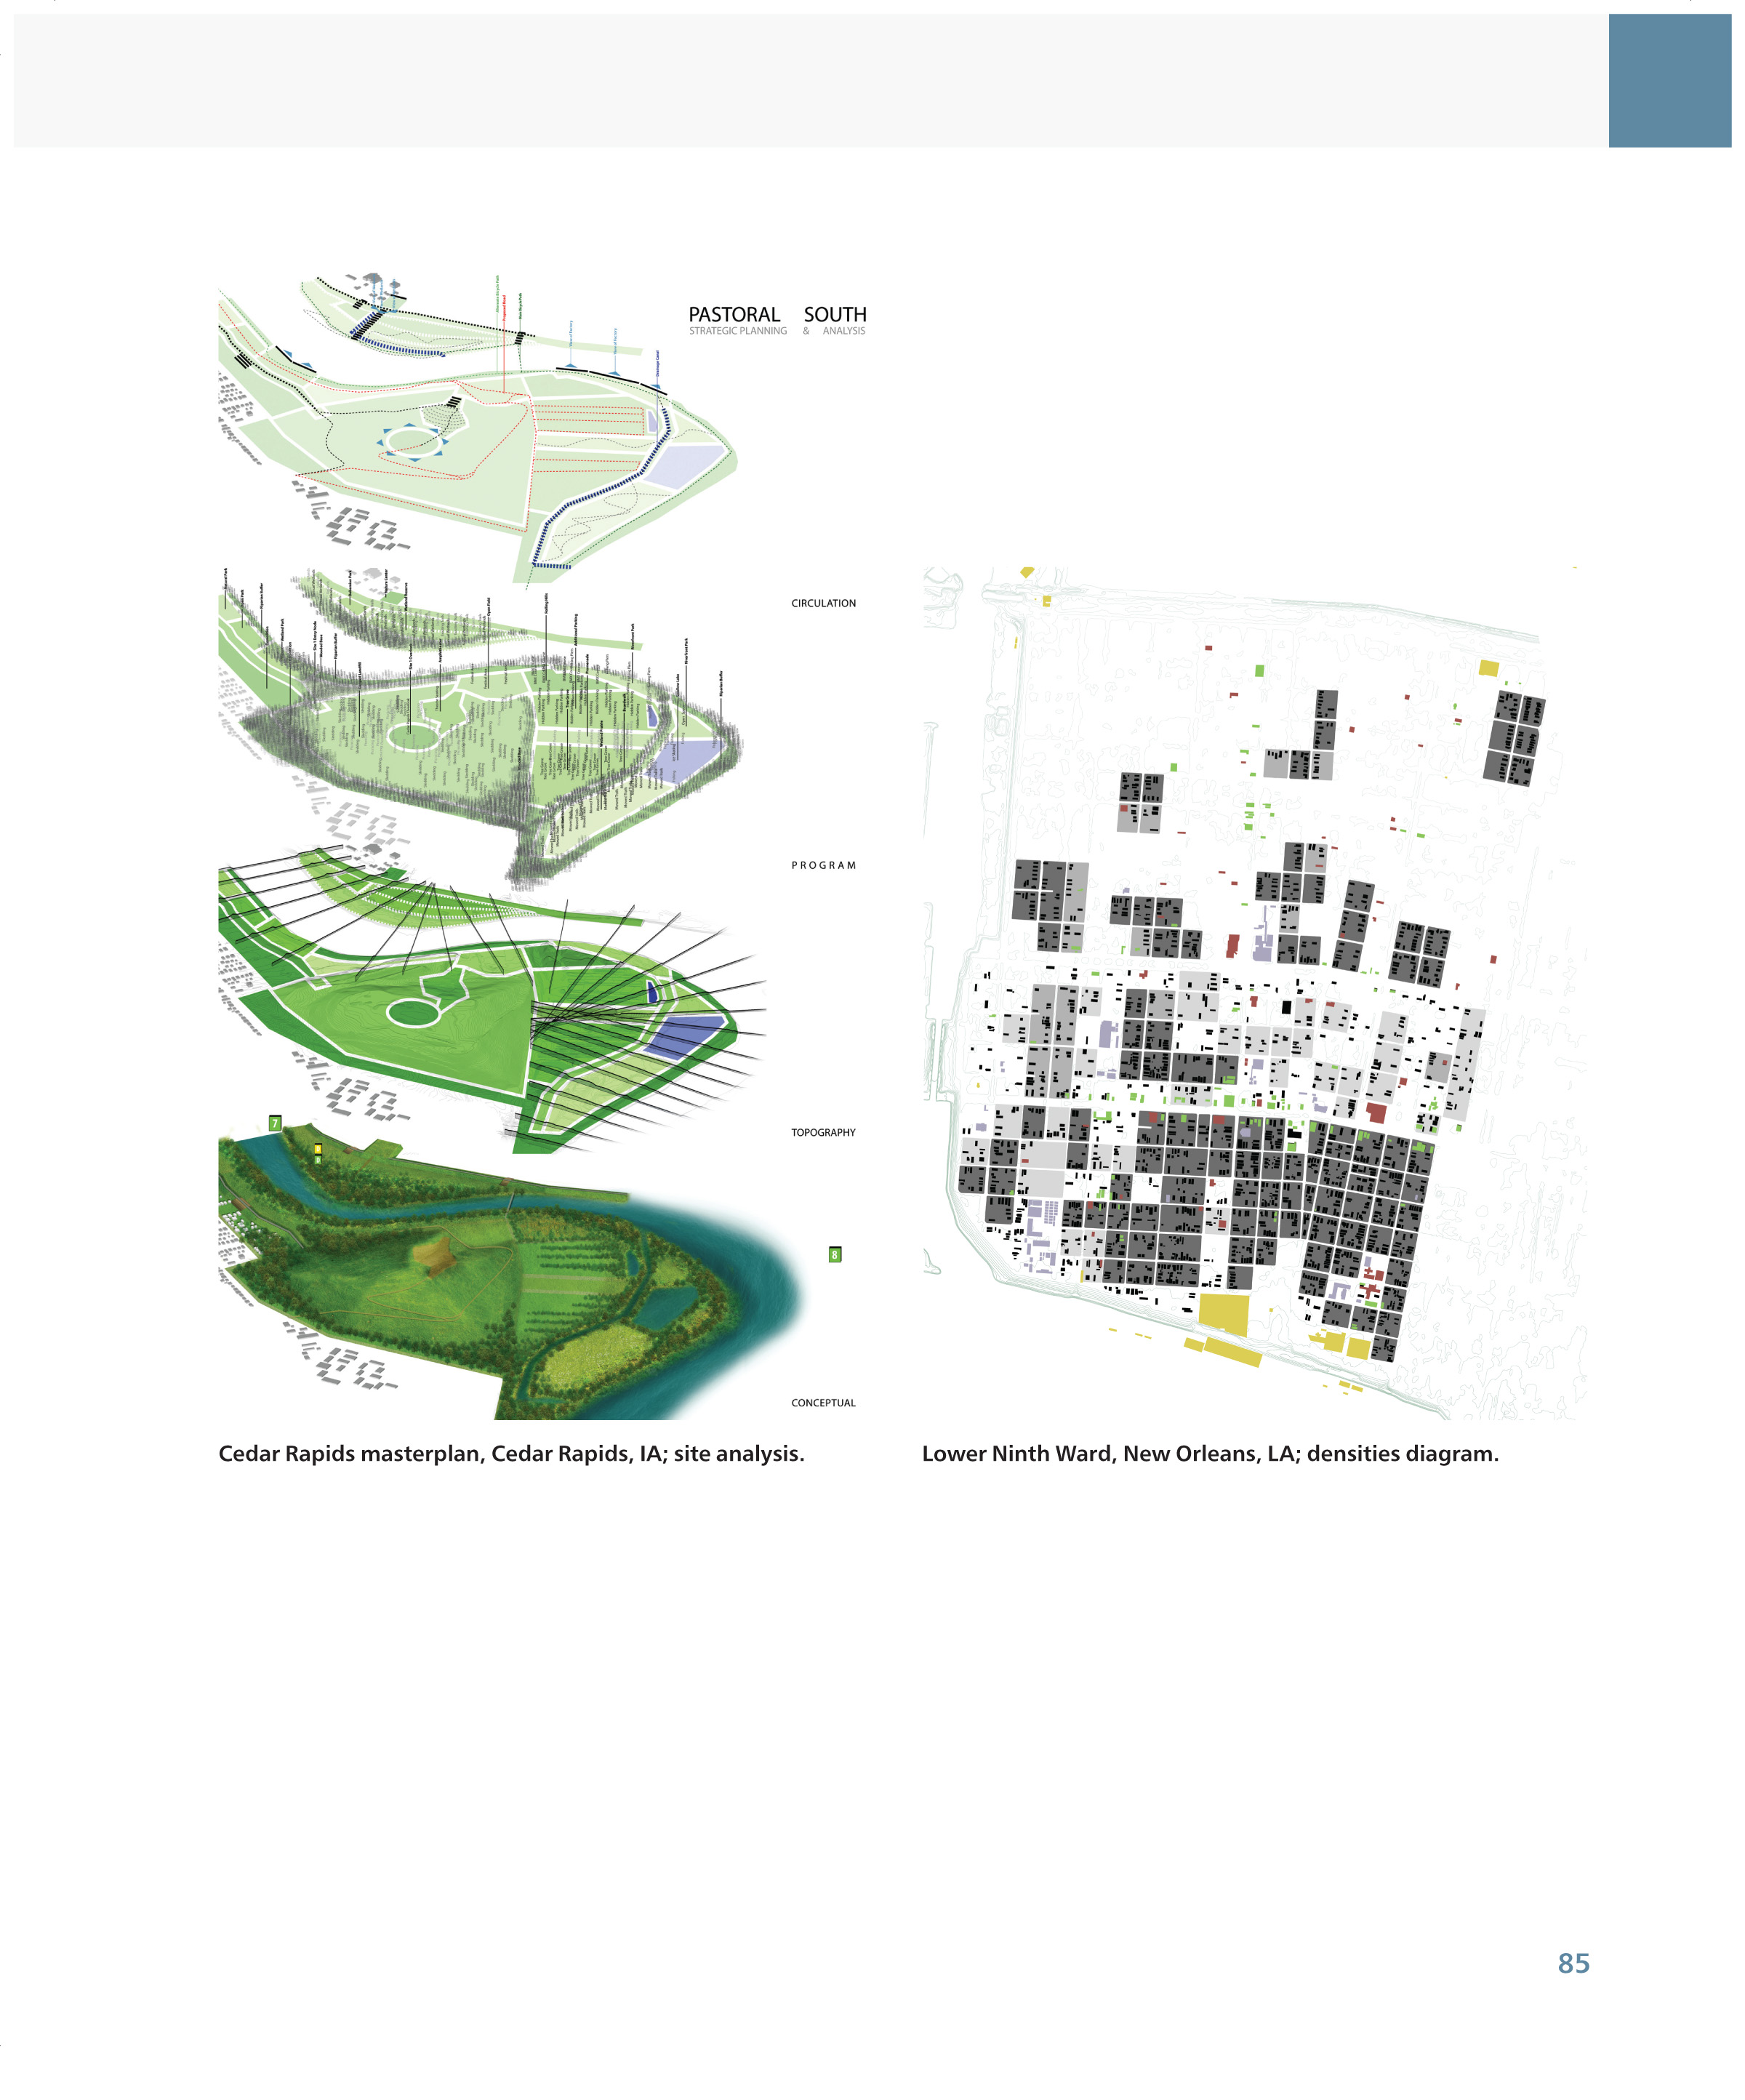 Architecture site plan diagram the for Architectural site plan drawing